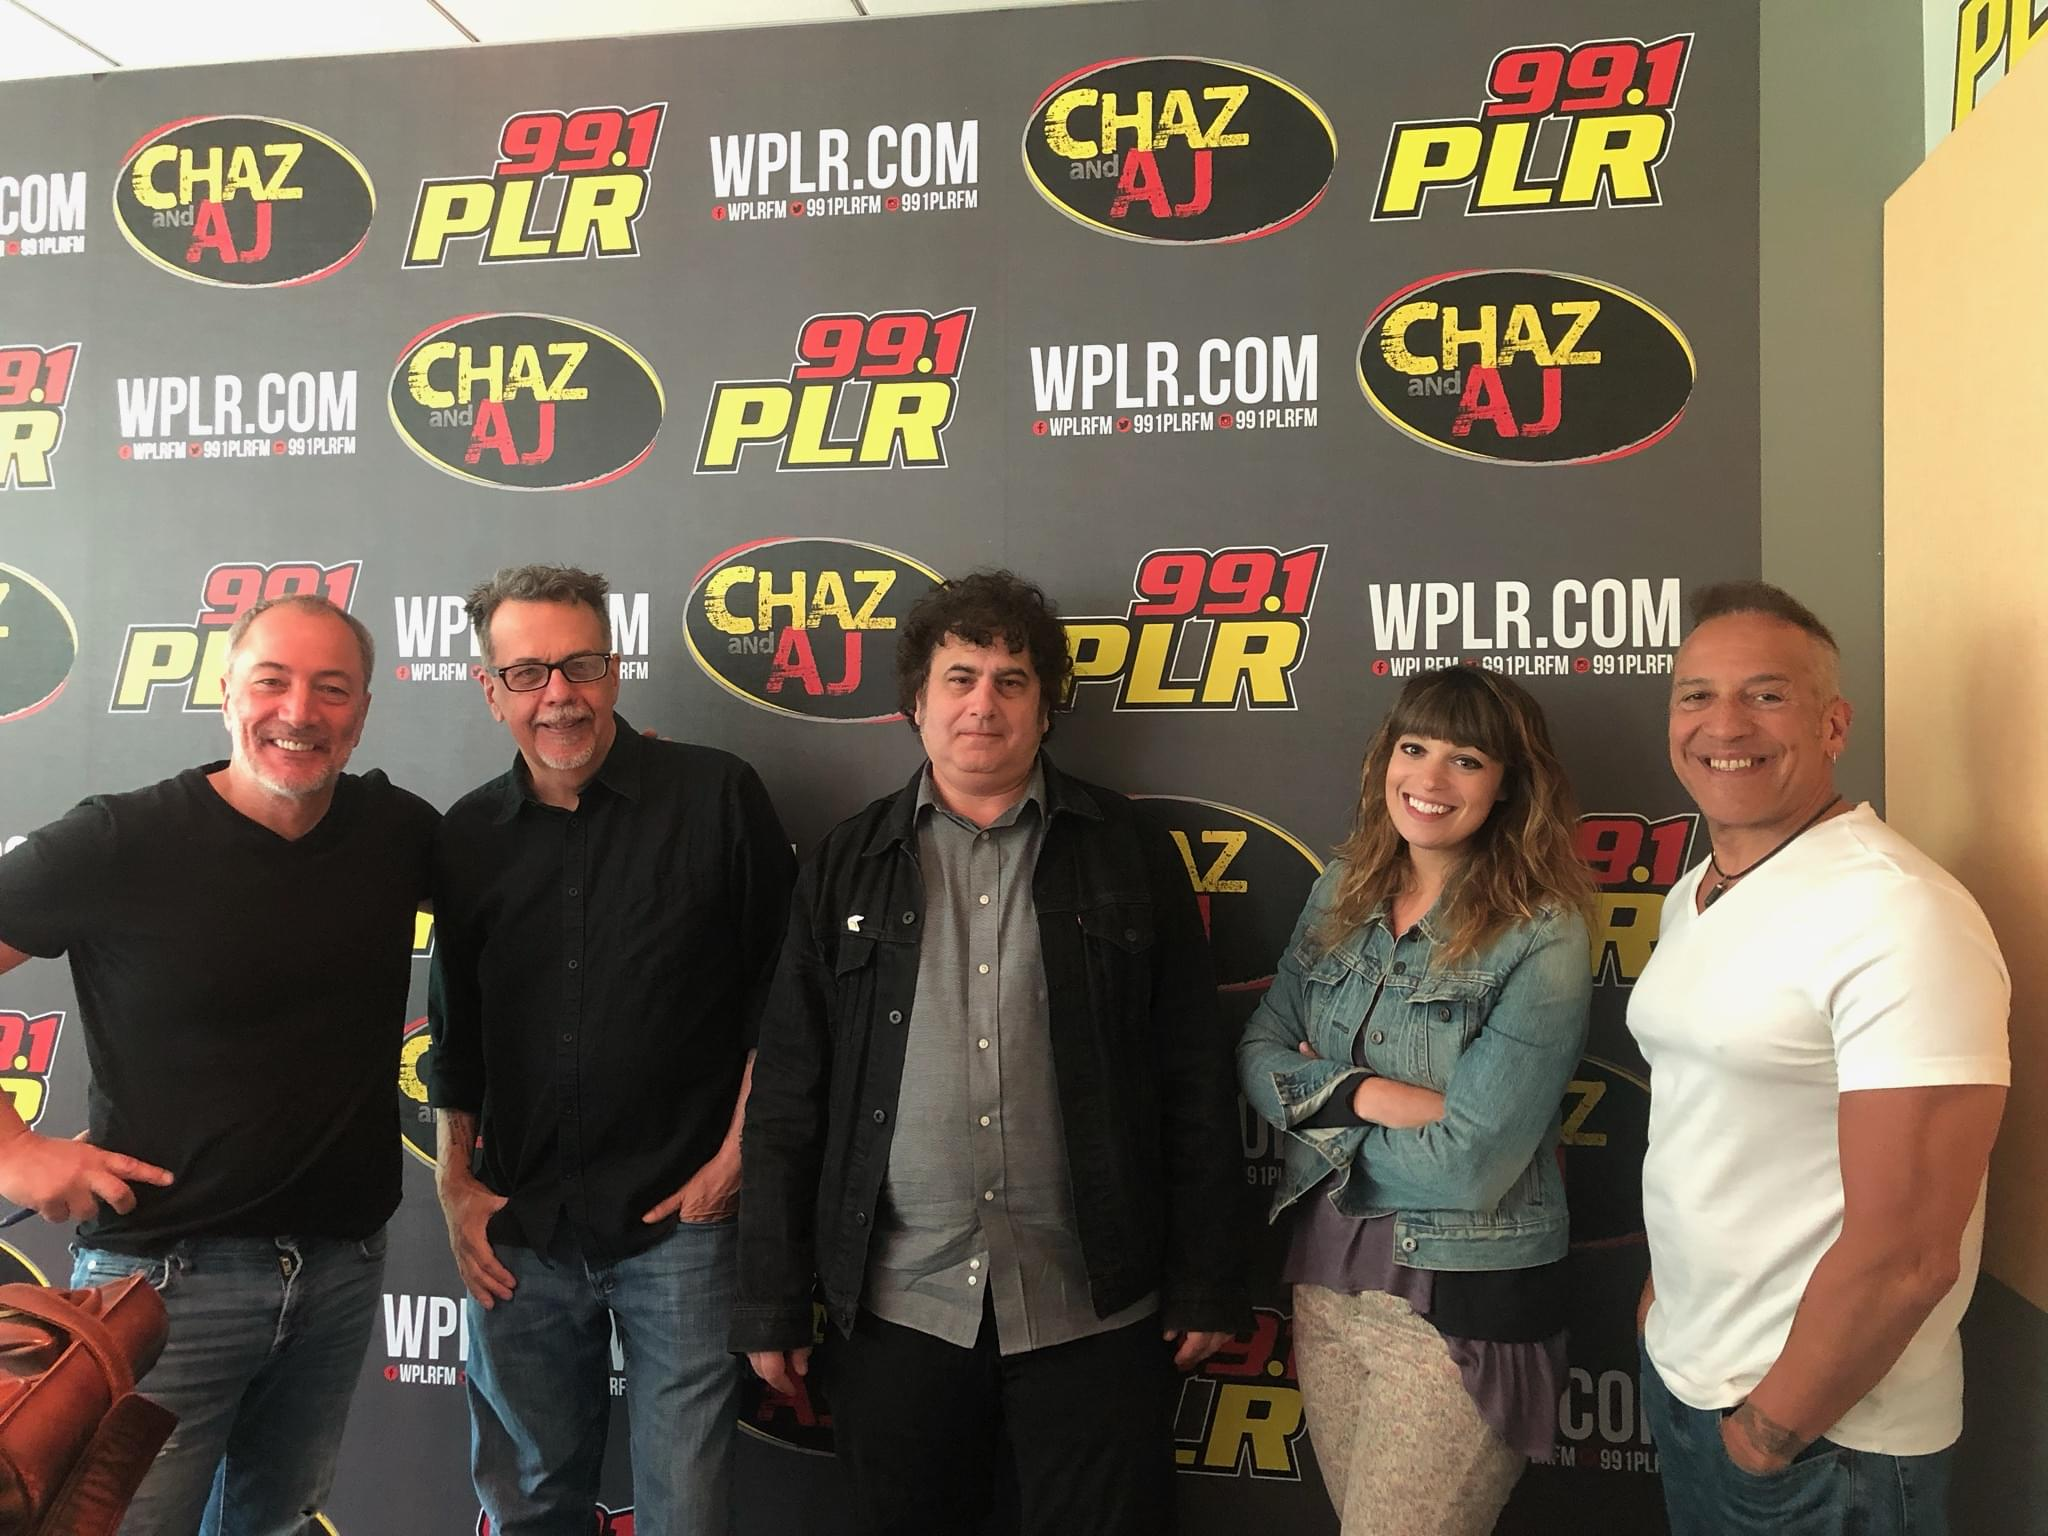 PODCAST – Tuesday, May 28: The Pizza Guys In Studio, AJ's Toothache, And The Public Emergency In Hamden